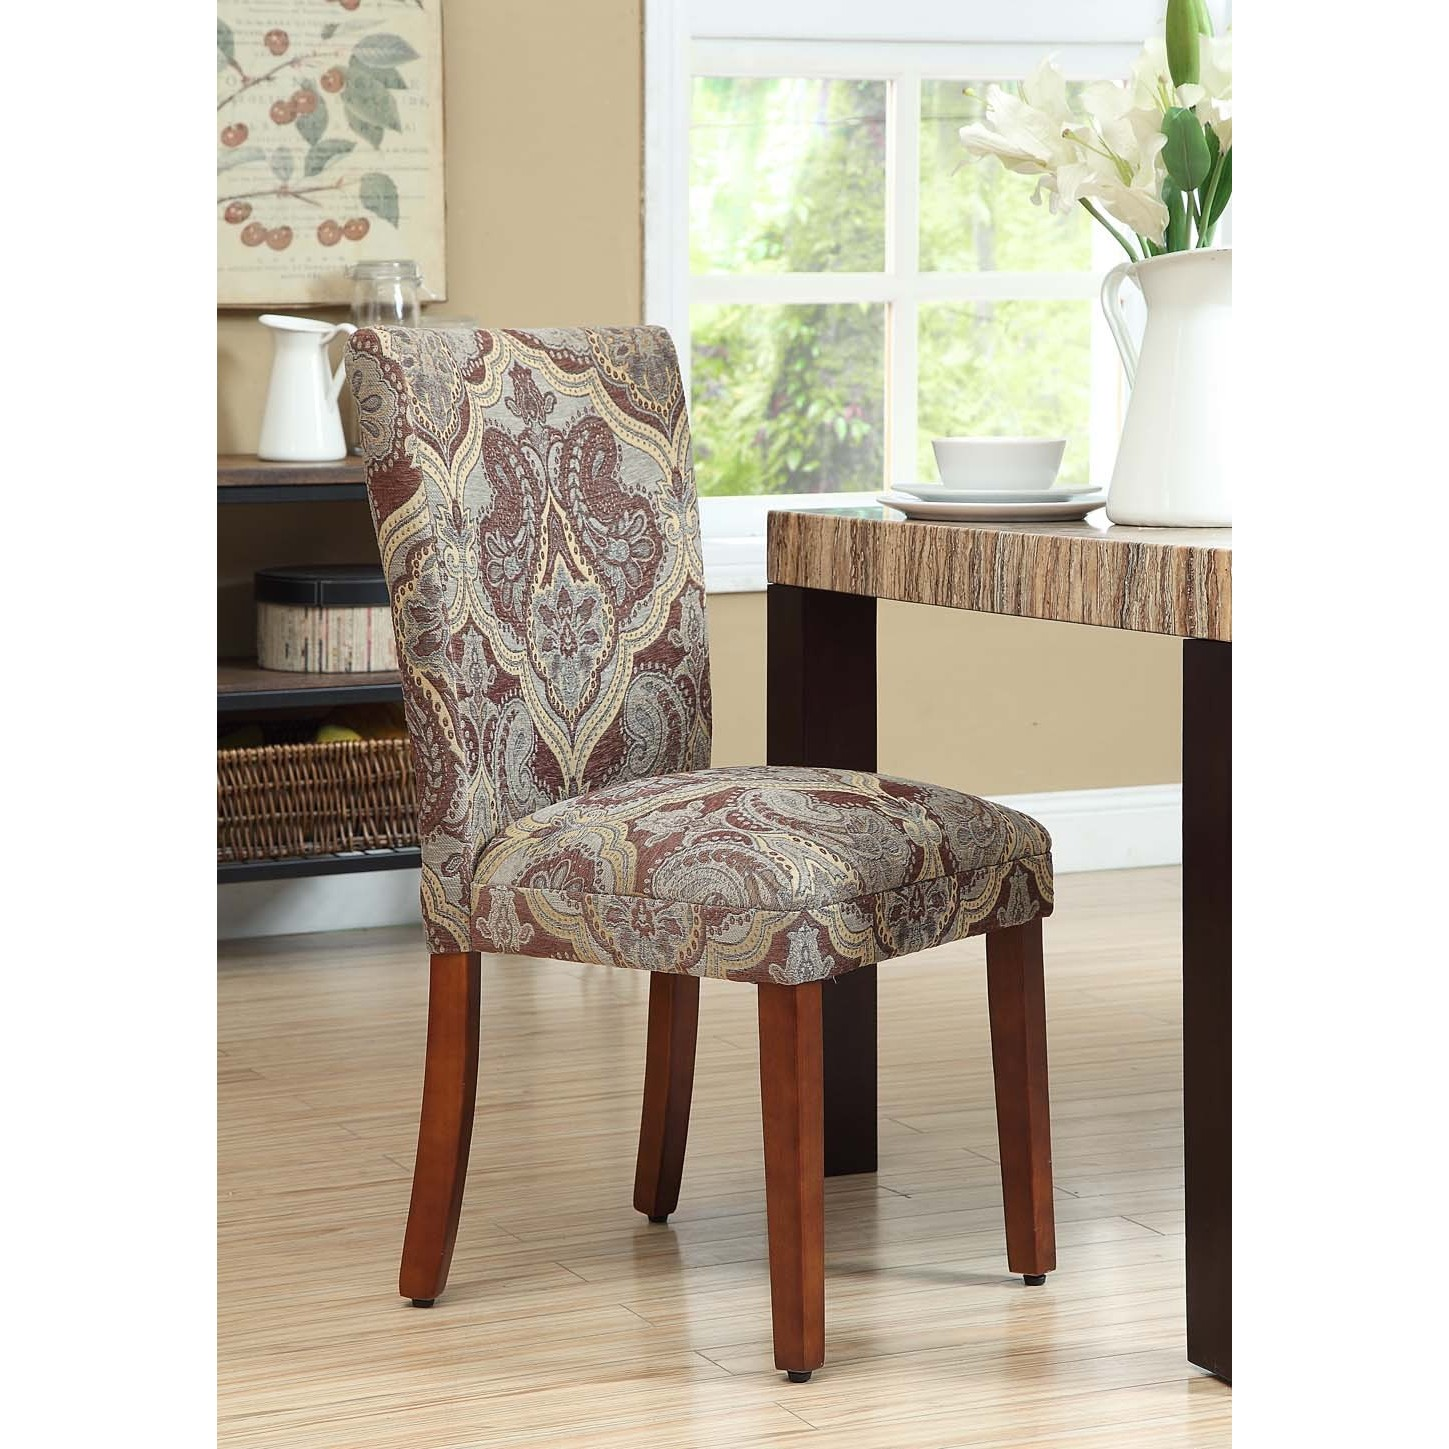 parson chairs tempur pedic tp9000 ergonomic mesh mid back executive chair black shop homepop blue and brown paisley set of 2 on